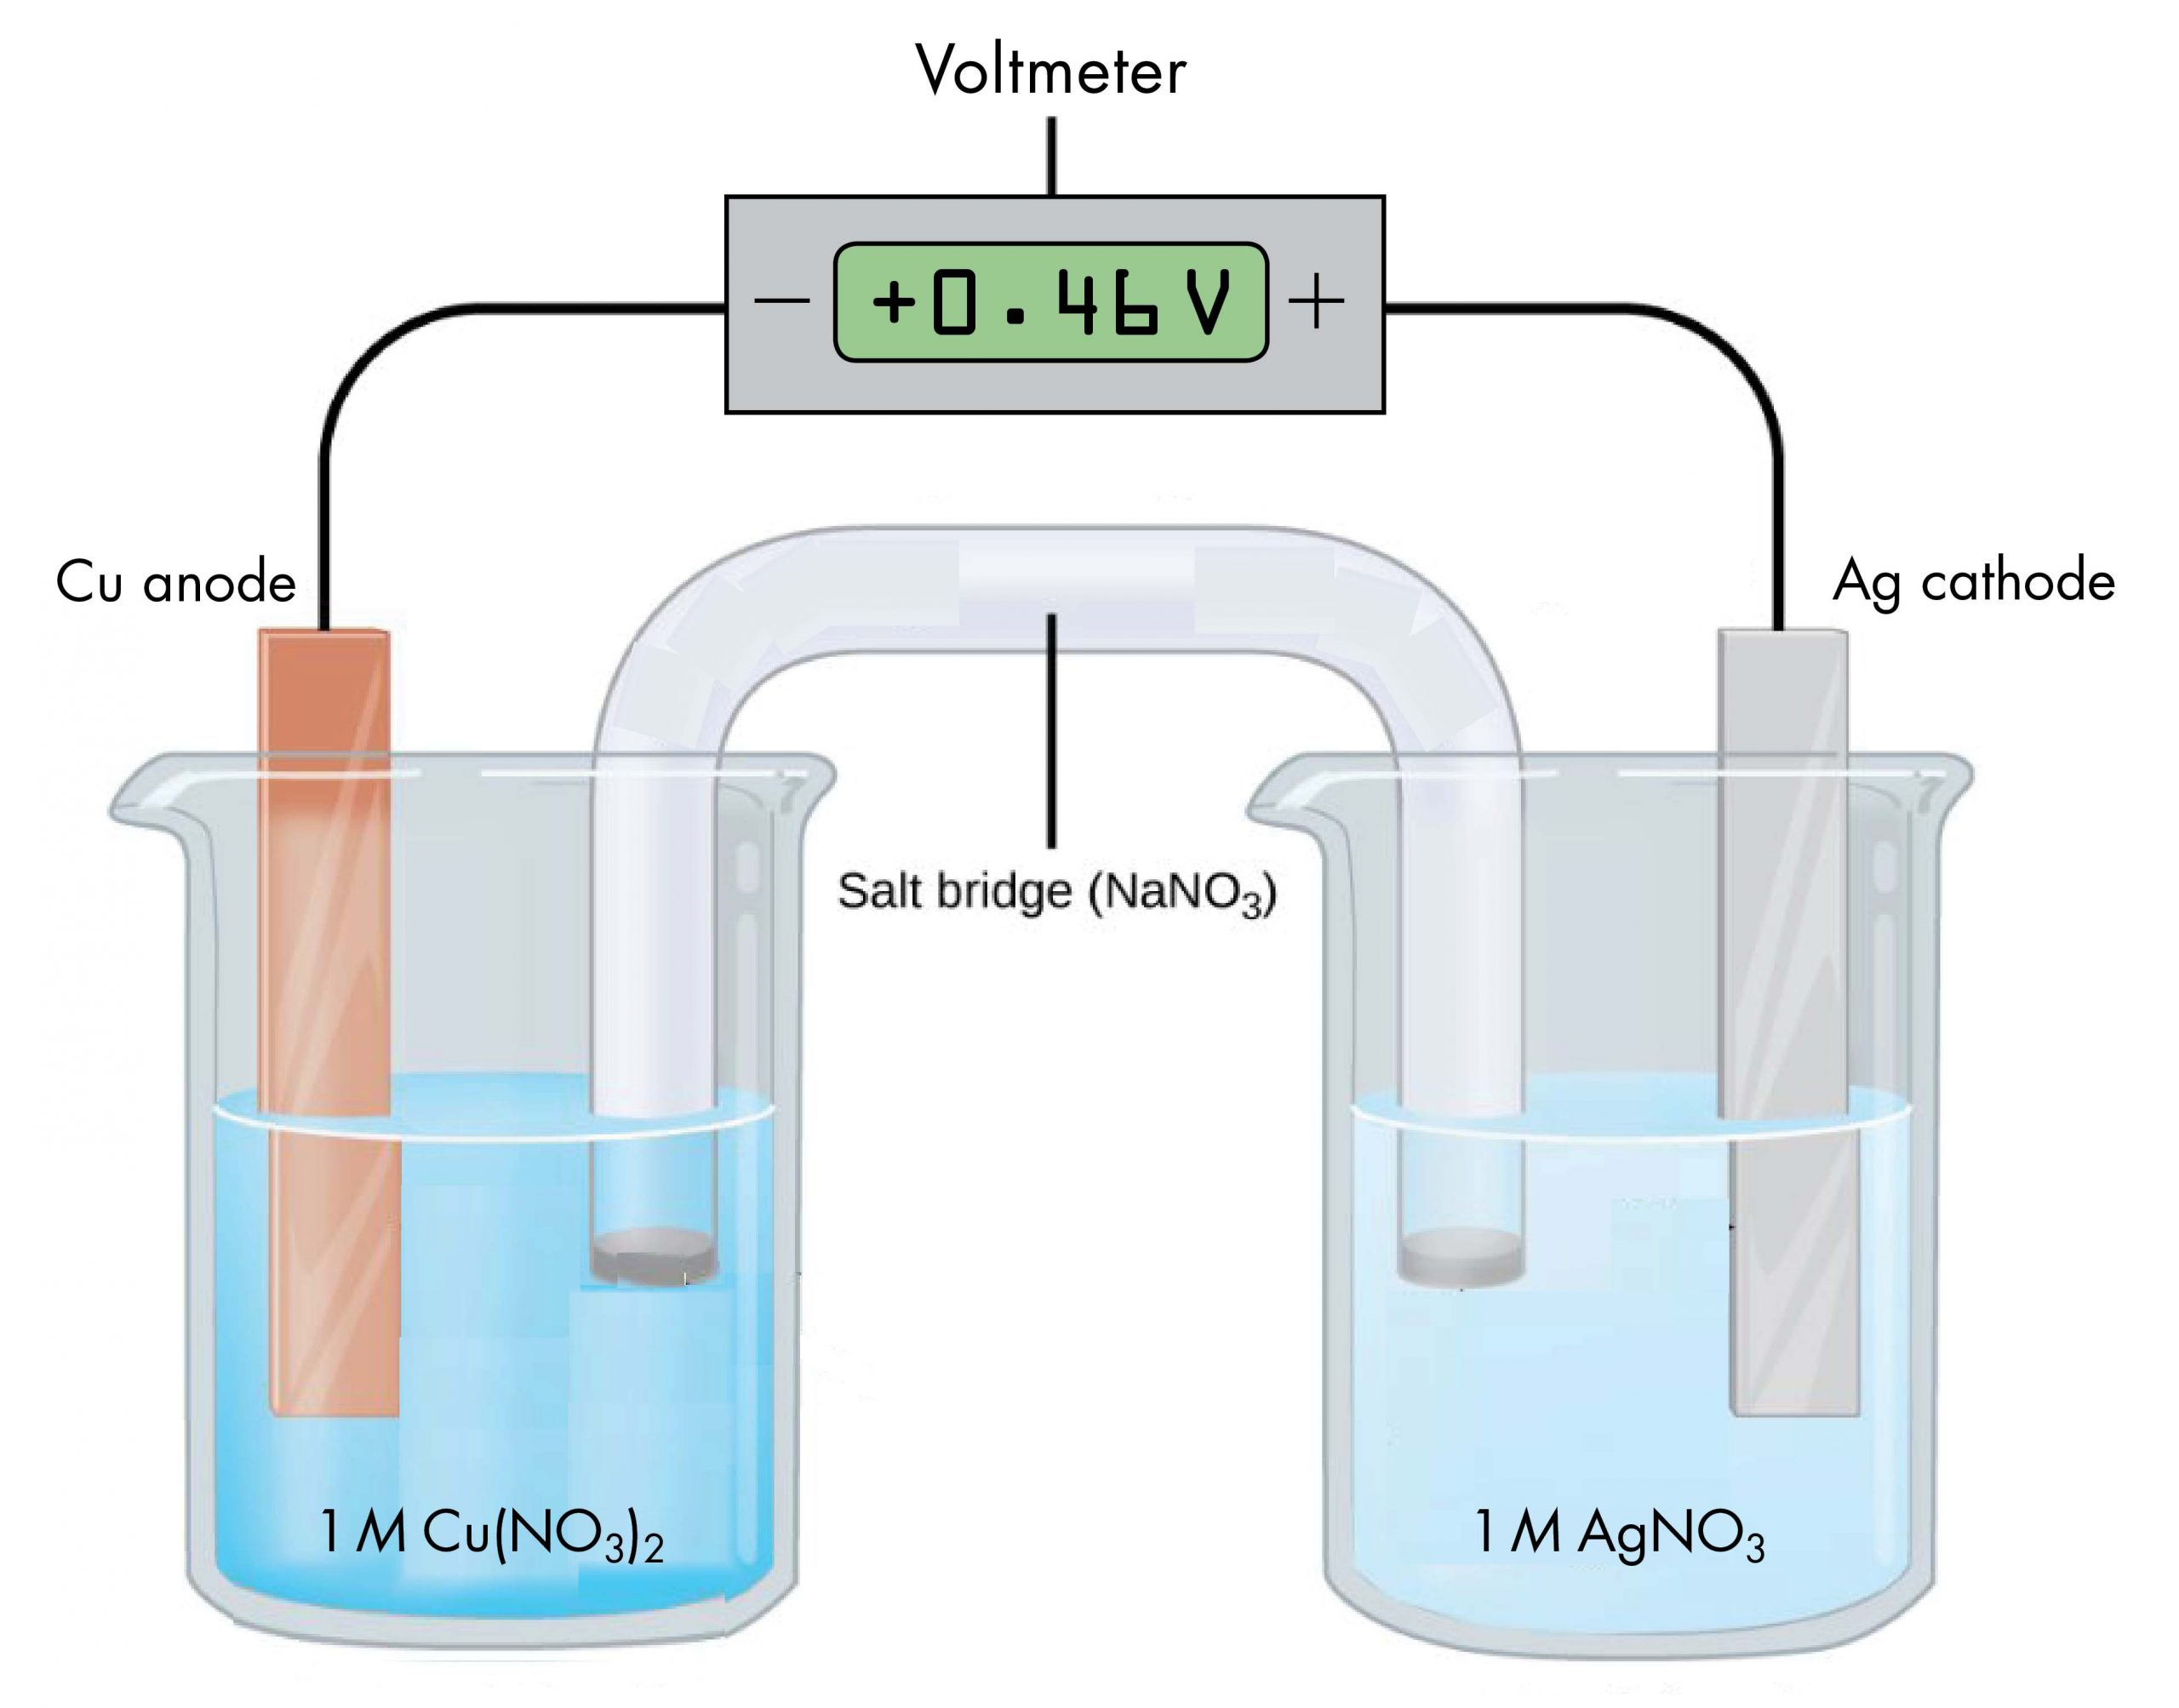 """This figure contains a diagram of an voltaic cell. Two beakers are shown. Each is just over half full. The beaker on the left contains a blue solution and is labeled below as """"1 M solution of copper (II) nitrate ( C u ( N O subscript 3 ) subscript 2 )."""" The beaker on the right contains a colorless solution and is labeled below as """"1 M solution of silver nitrate ( A g N O subscript 3 )."""" A glass tube in the shape of an inverted U connects the two beakers at the center of the diagram. The tube contents are colorless. The ends of the tubes are beneath the surface of the solutions in the beakers and a small grey plug is present at each end of the tube. At the center of the diagram, the tube is labeled """"Salt bridge ( N a N O subscript 3 ). Each beaker shows a metal strip partially submerged in the liquid. The beaker on the left has an orange brown strip that is labeled """"C u anode """" at the top. The beaker on the right has a silver strip that is labeled """"A g cathode"""" at the top. A wire extends from the top of each of these strips to a rectangular digital readout indicating a reading of positive 0.46 V that is labeled """"Voltmeter."""" The left side of the voltmeter has a minus sign indicating a negative terminal. The wire from the copper strip connects to this terminal. The right side of the voltmeter has a plus sign indicating a positive terminal. The wire from the silver strip connects to this terminal."""